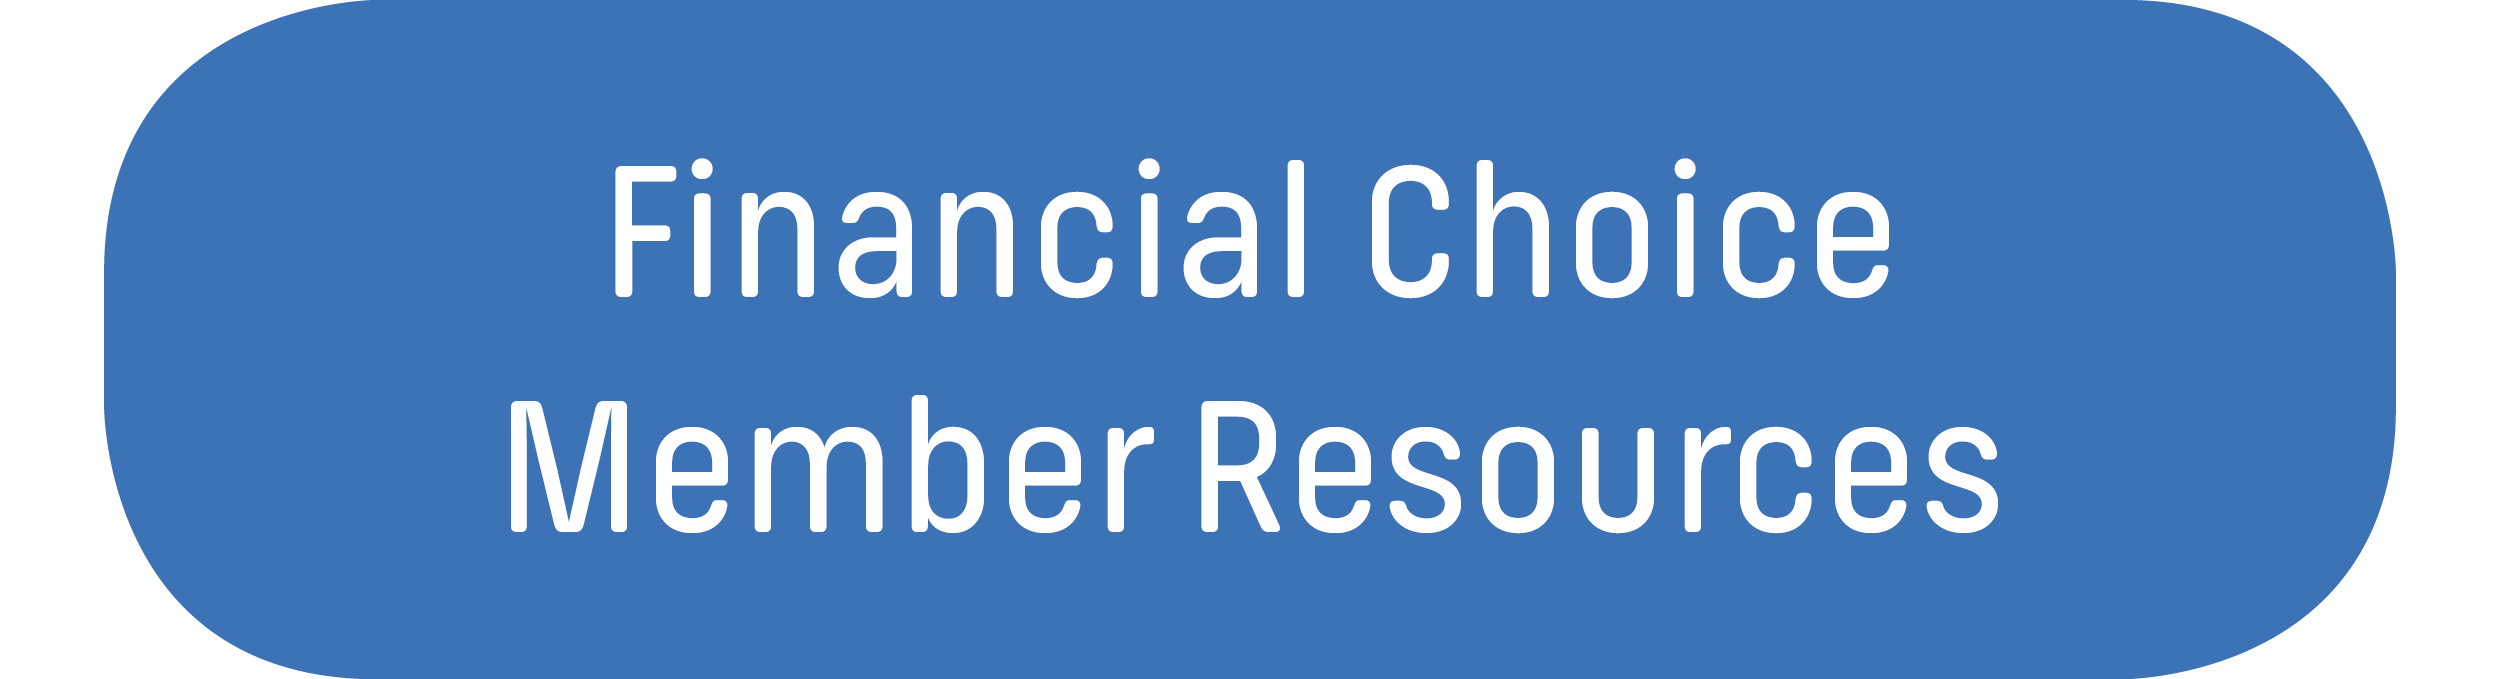 Financial Choice Partner Page Button